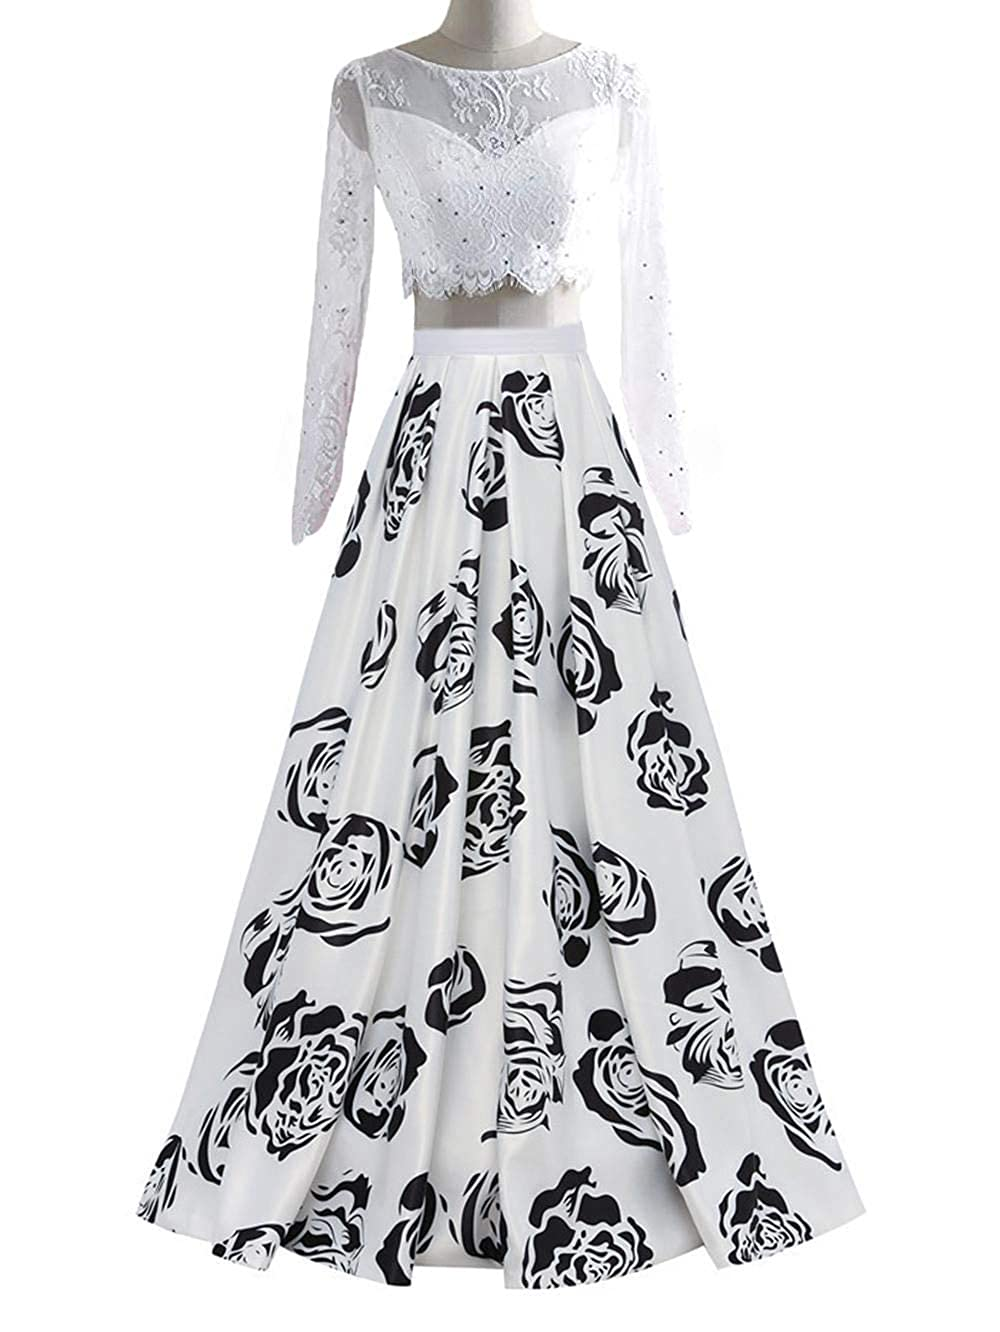 Sleevewhite1 Dydsz Long Evening Prom Dresses for Women Formal Gown with Pockets Print Floral D295